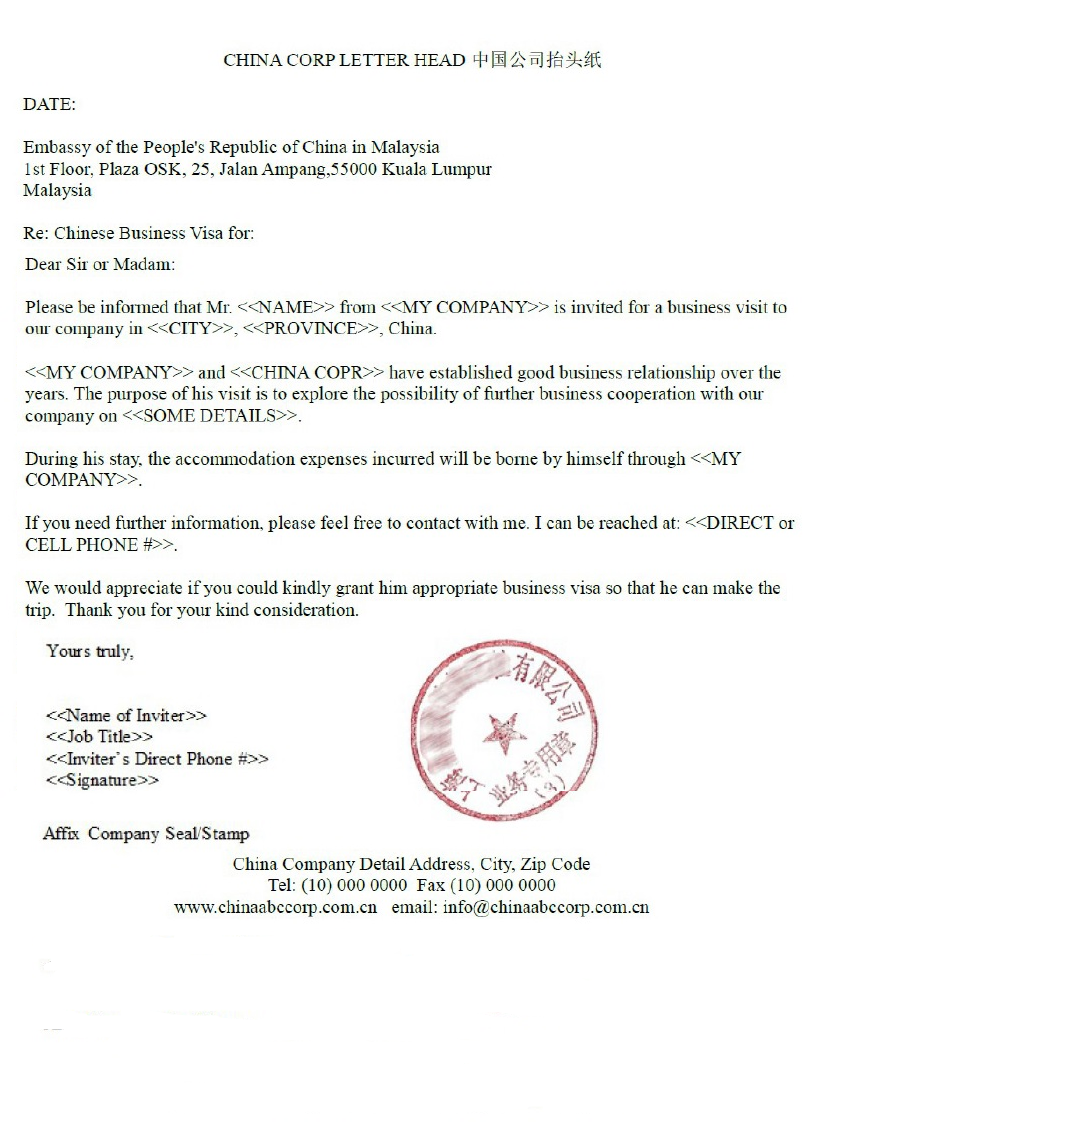 Sample invitation letter for business visa tripvisa click here to download stopboris Gallery